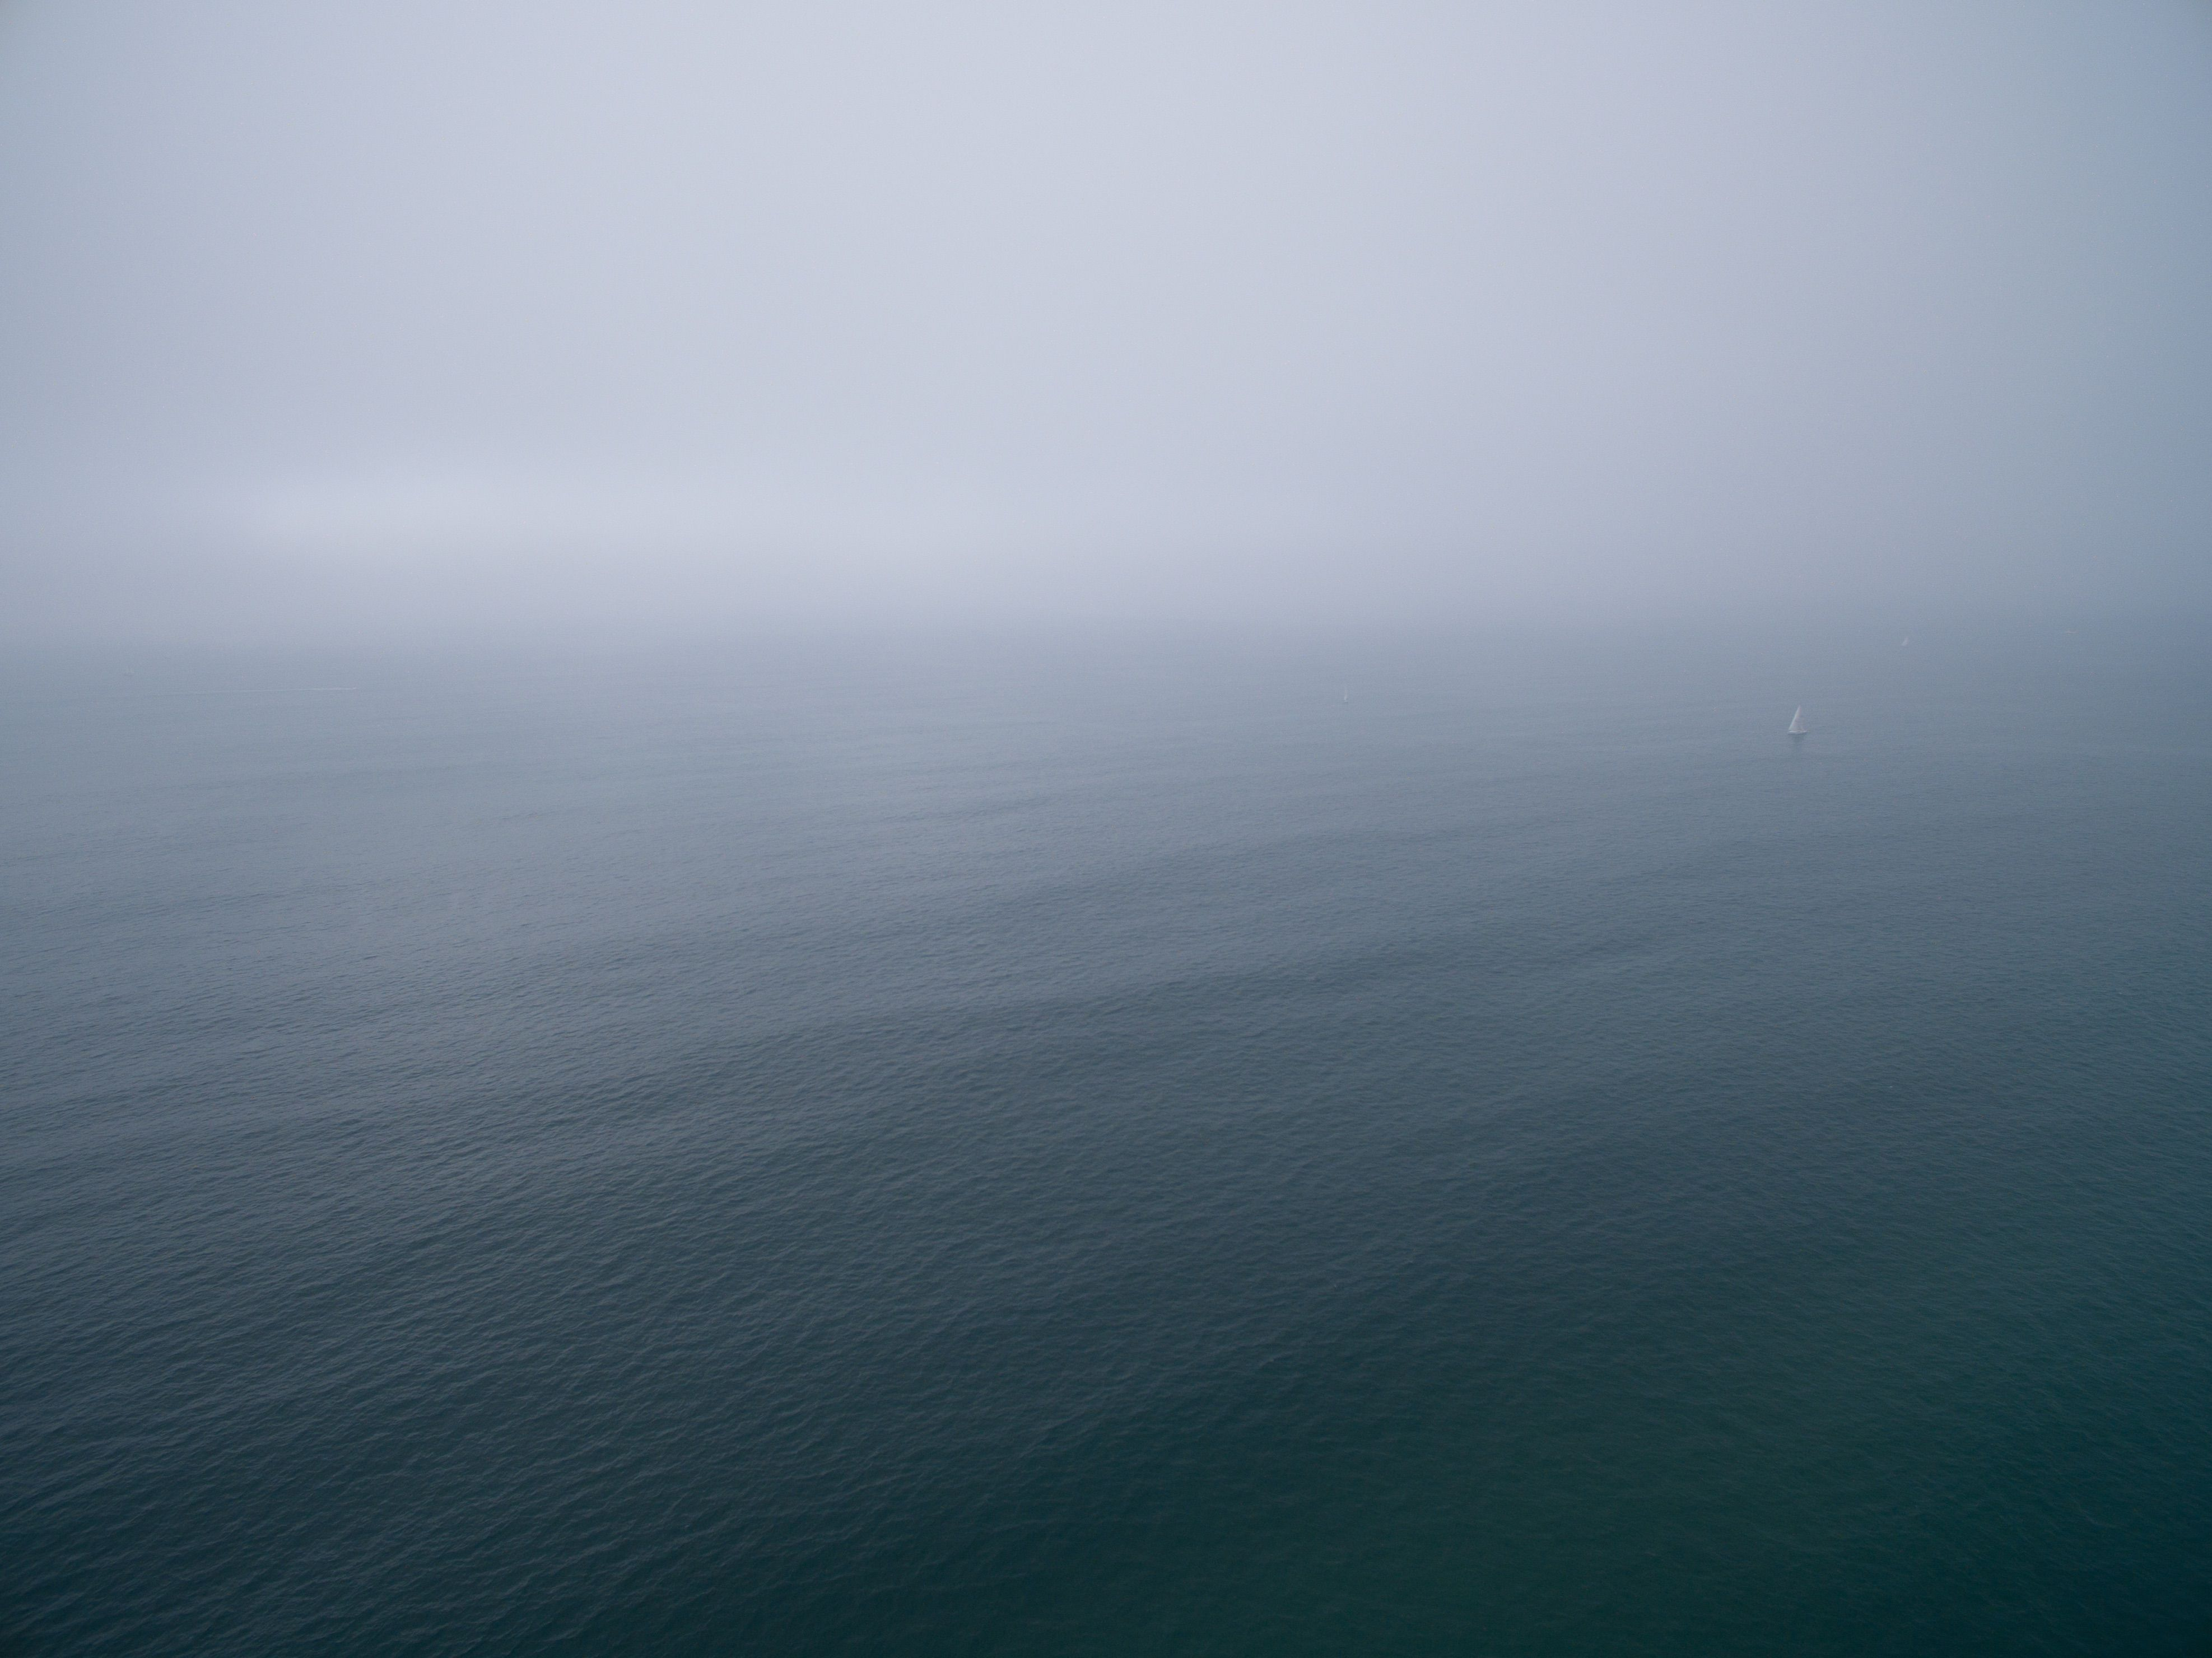 Abstract Background Fog Lake Landscape Ocean Sea Sky Water Discover Your Next Wallpaper Scenery Photos Ocean Pictures Aerial Images